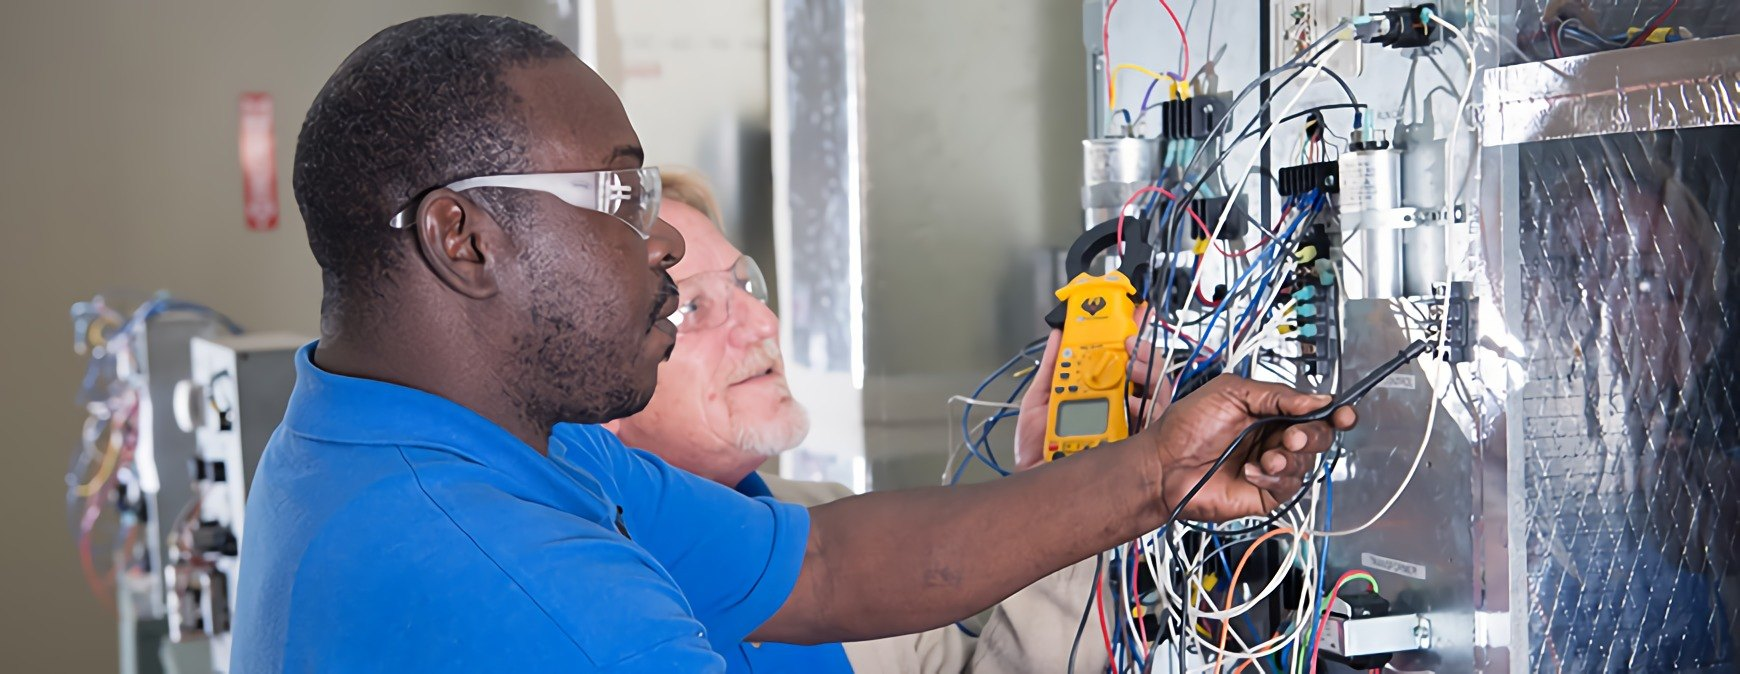 learning a skilled trade at a vocational school